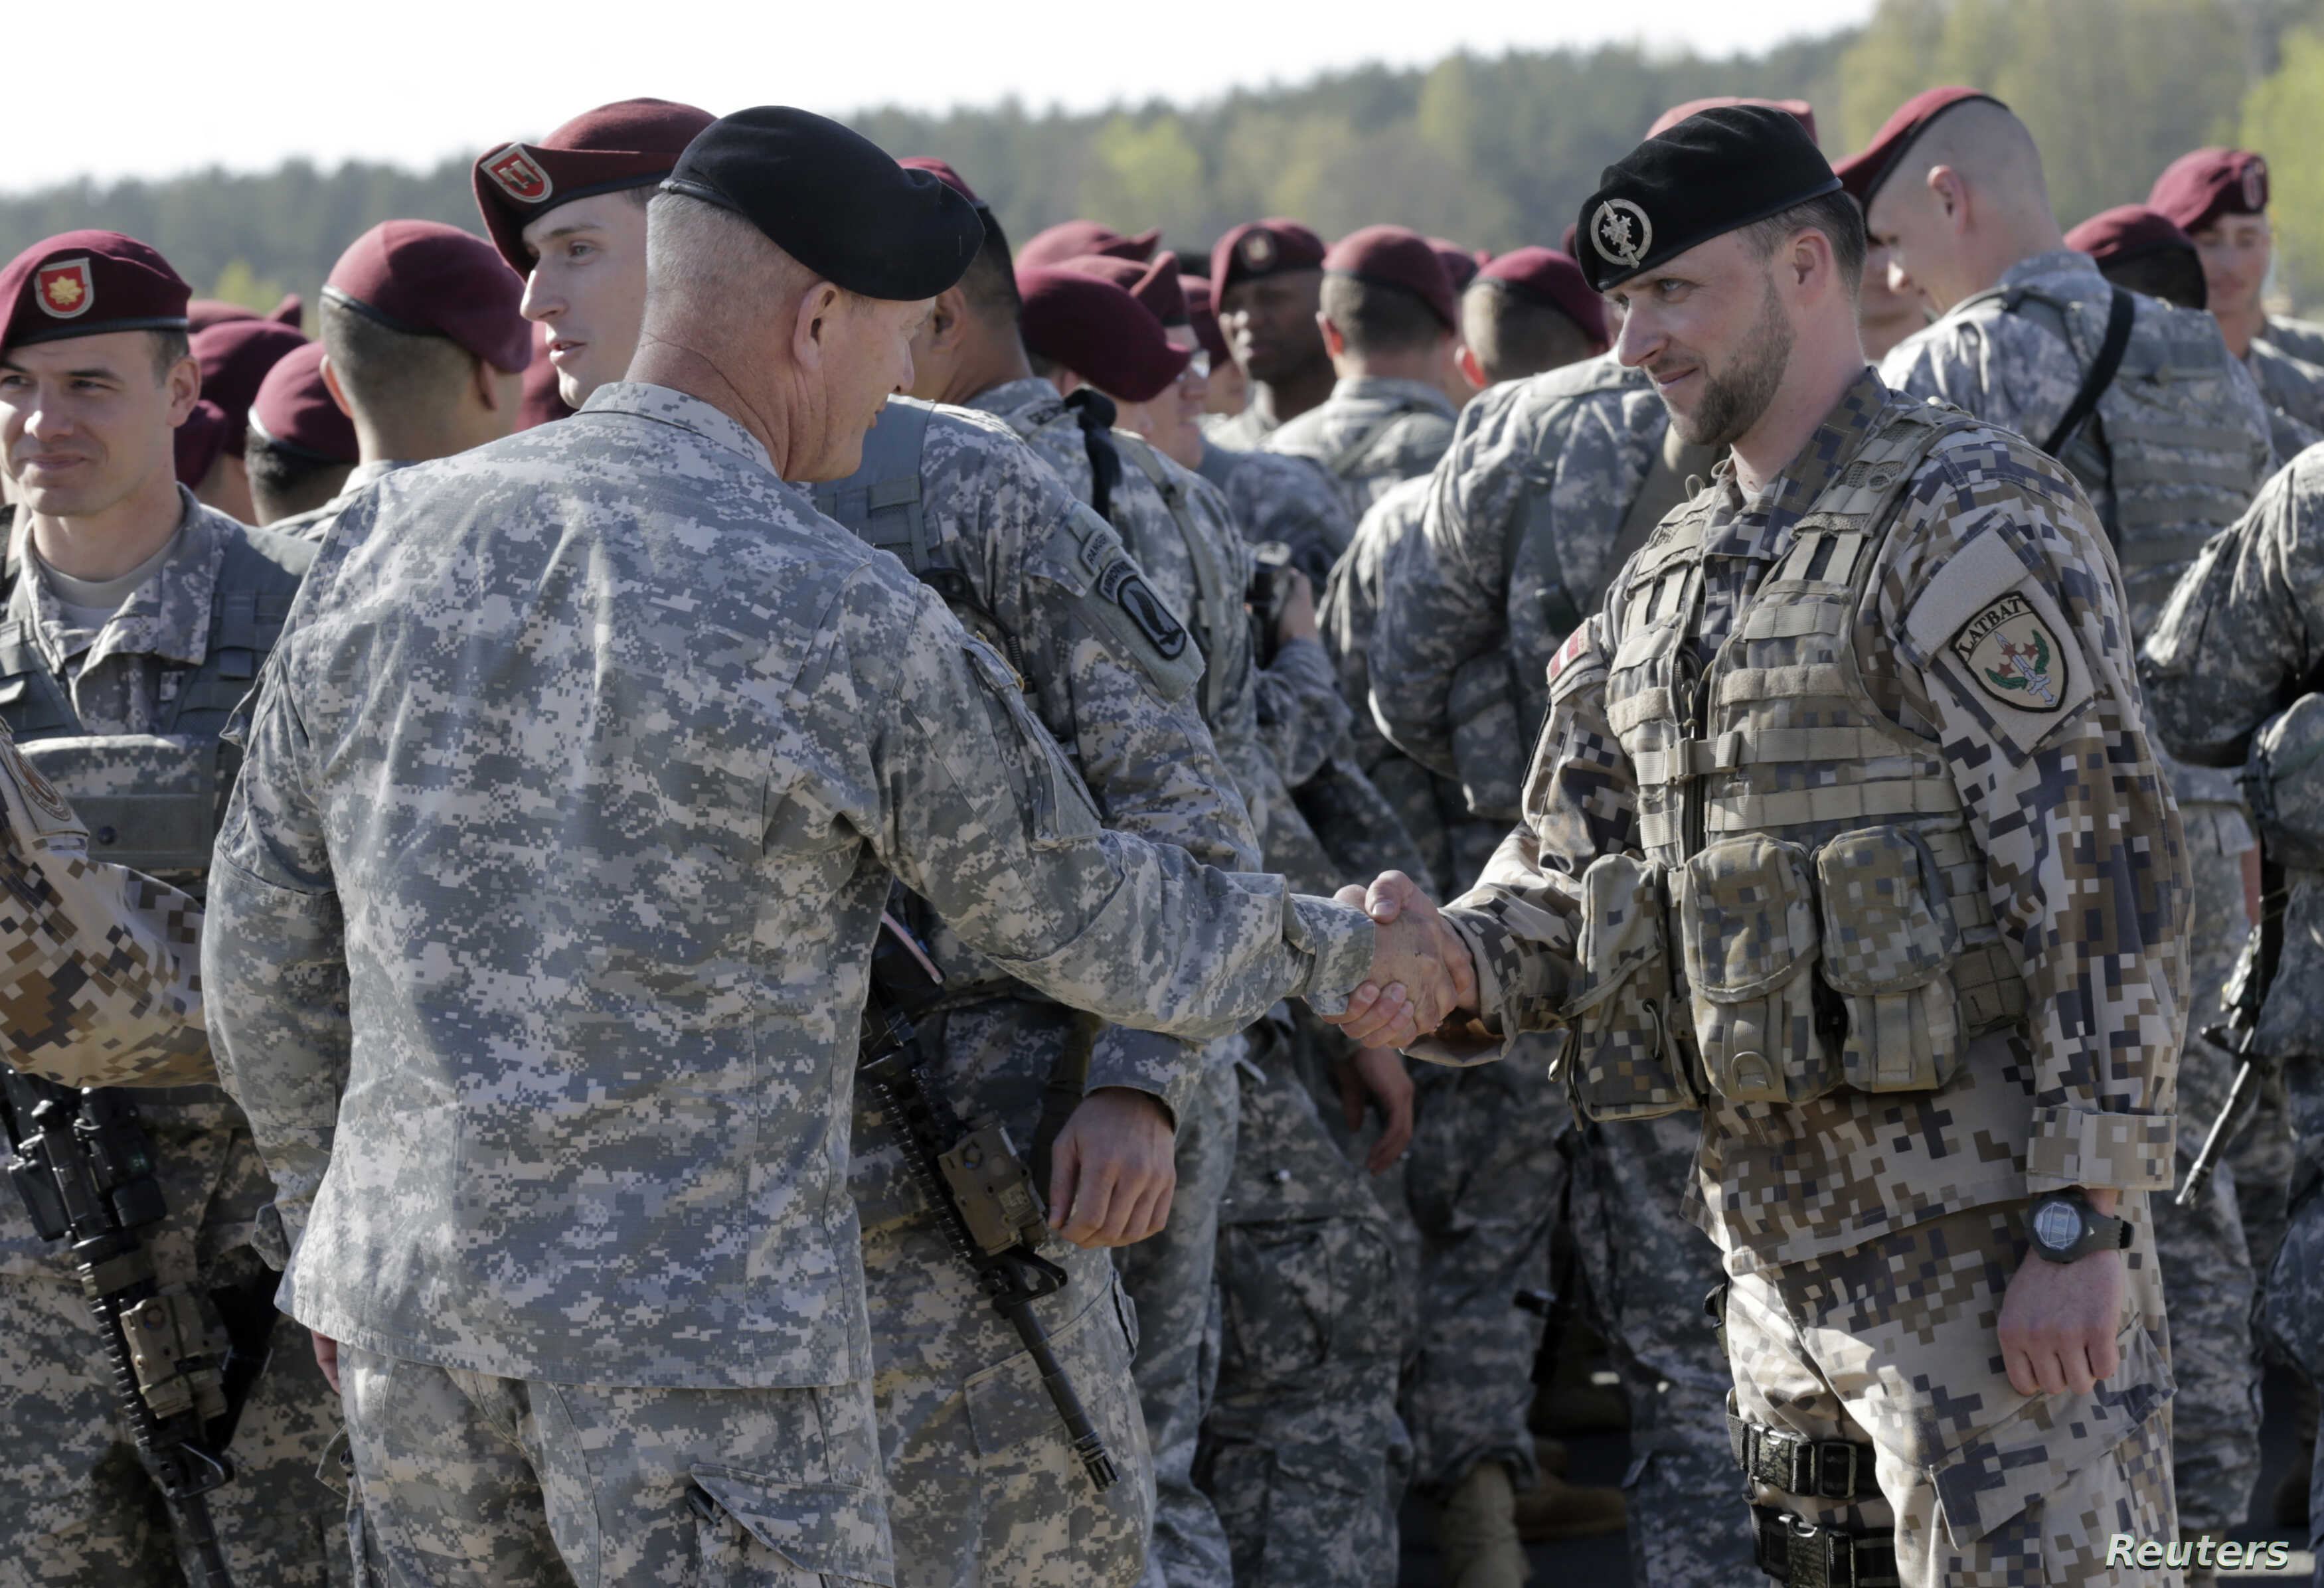 A Latvian army officer (R) shakes hands with his U.S. counterpart as a contingent of U.S. Army paratroopers arrive at the airport in Riga April 24, 2014.